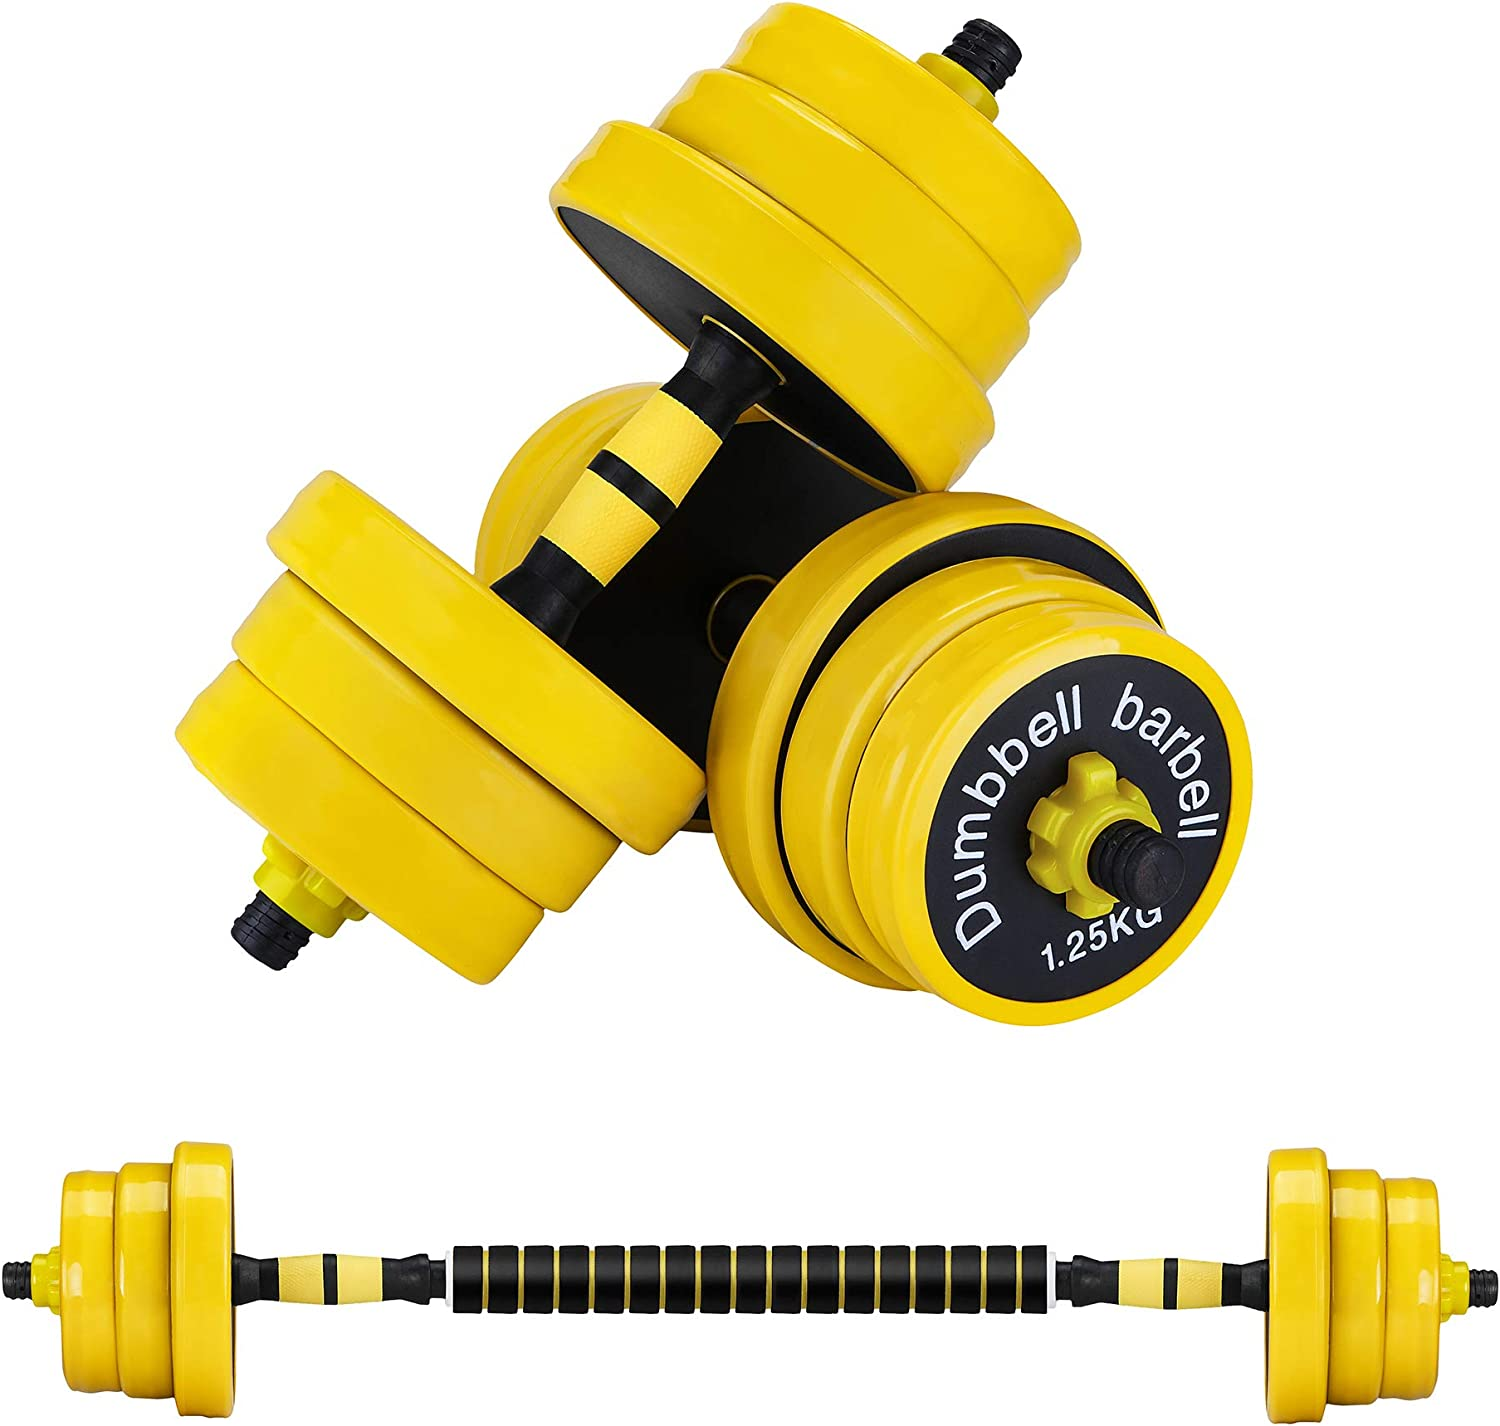 ZYOMY Adjustable Dumbbells Barbell Set, Weights Dumbbell with Connecting Rod, 44Lbs Free Weights 2-in-1 Set Workout Exercise Training Fitness, Non-Slip Neoprene Hand, All-Purpose, Home, Gym, Office